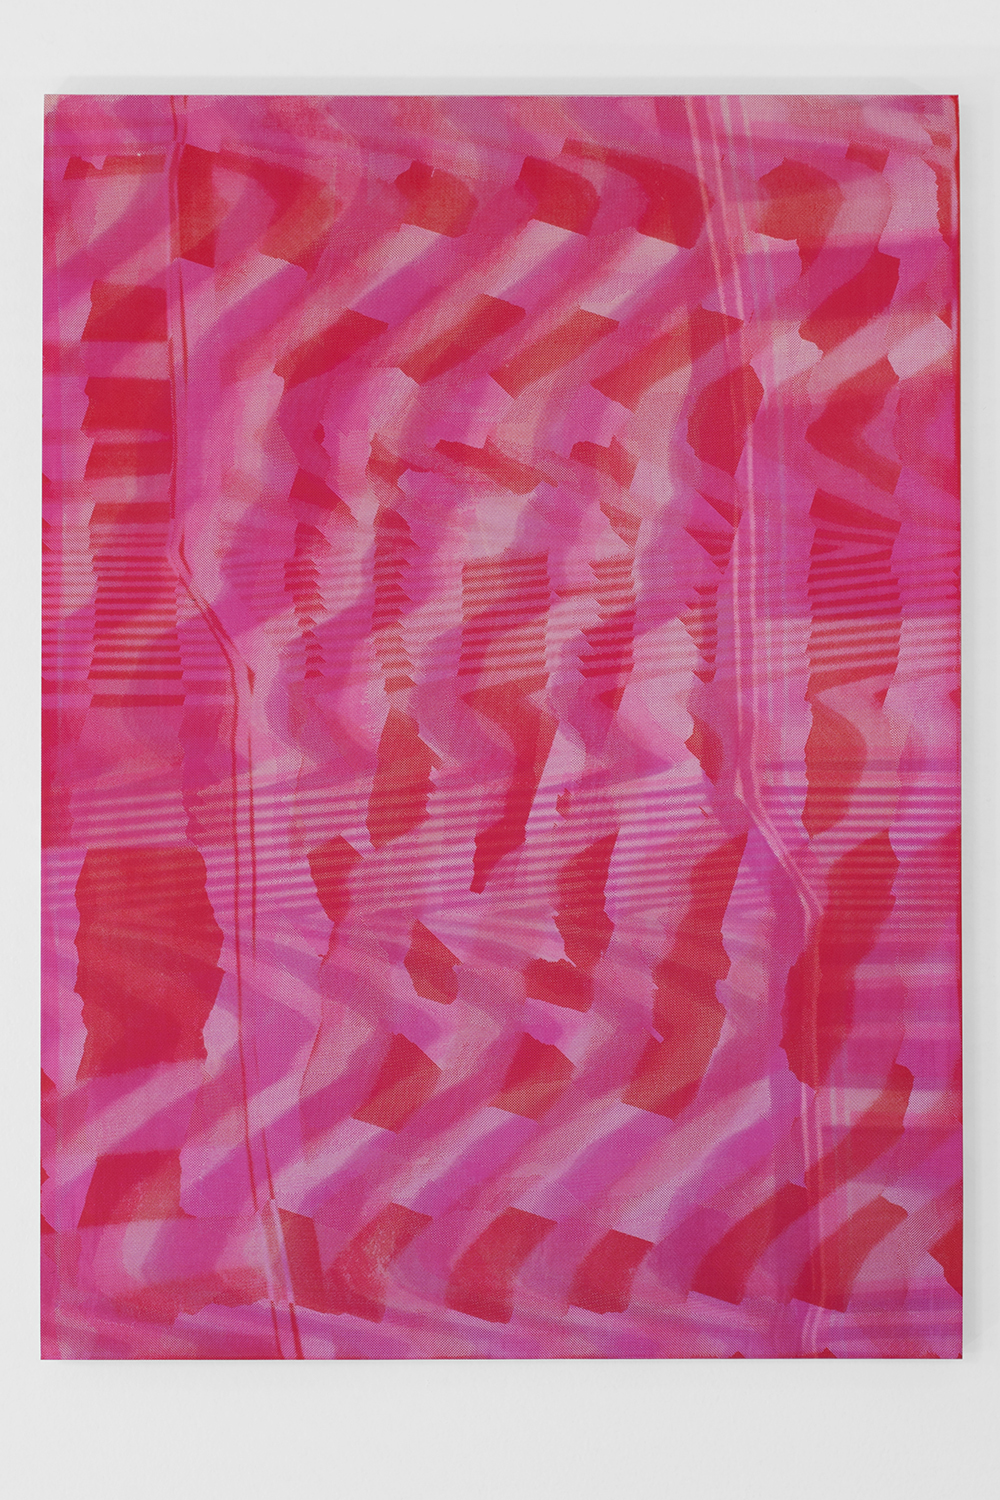 Graham McDougal and Elizabeth Corkery, the Modern Interior  at  Firstdraft , Covering, silkscreen ink and acrylic on panel, 22 x 16.75 inches, 2014